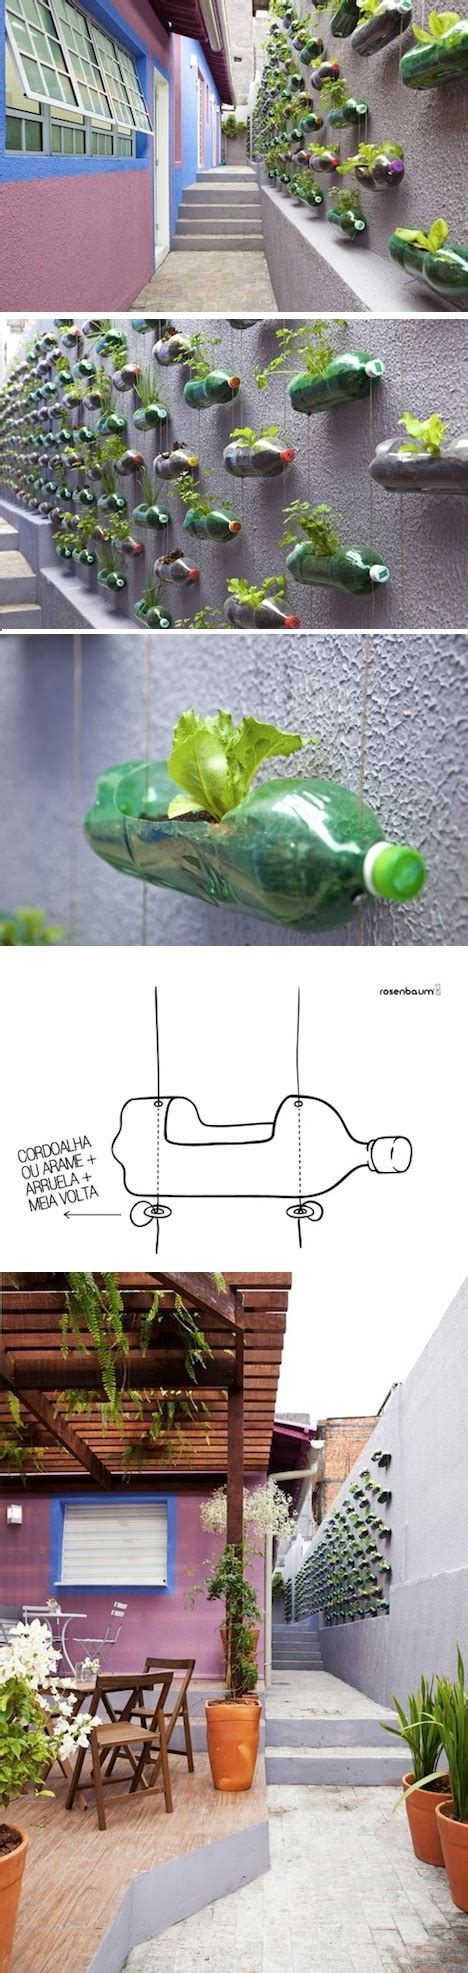 awesome vertical garden with recycled pet bottles at poor